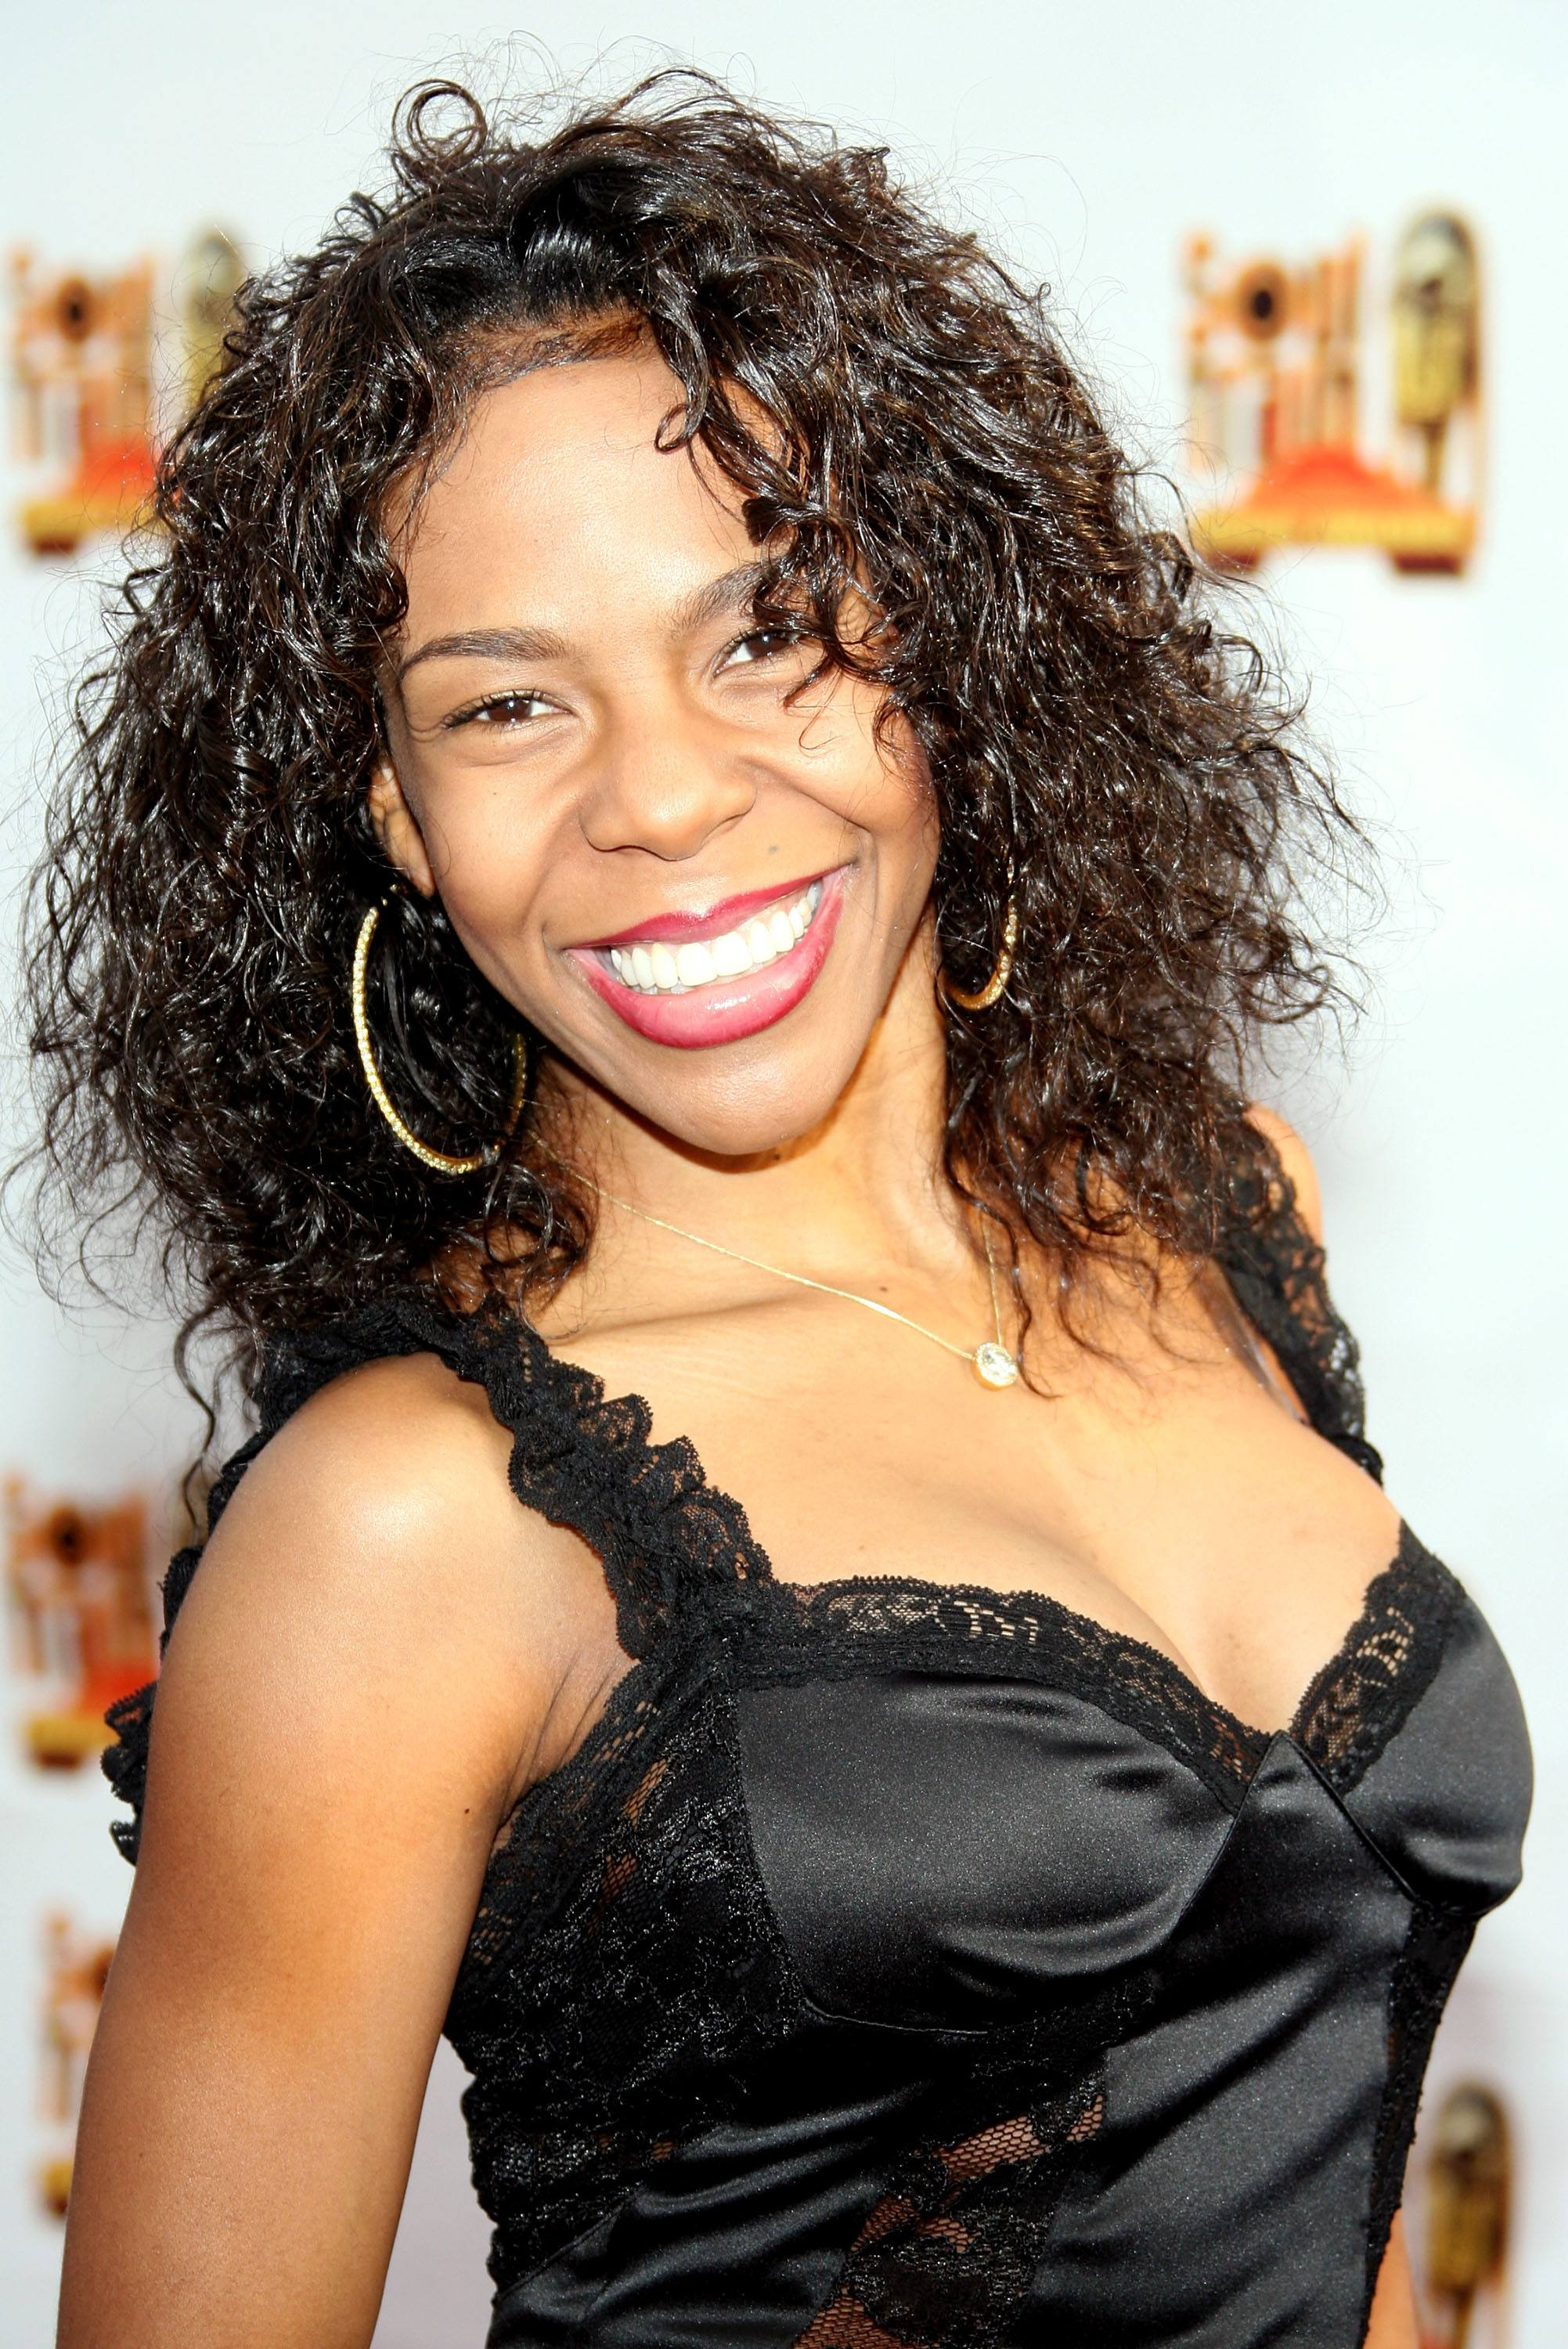 Andrea Kelly arrives at the 21st Annual Soul Train Music Awards held at the Pasadena Civic Auditorium on March 10, 2007 in Pasadena, California.